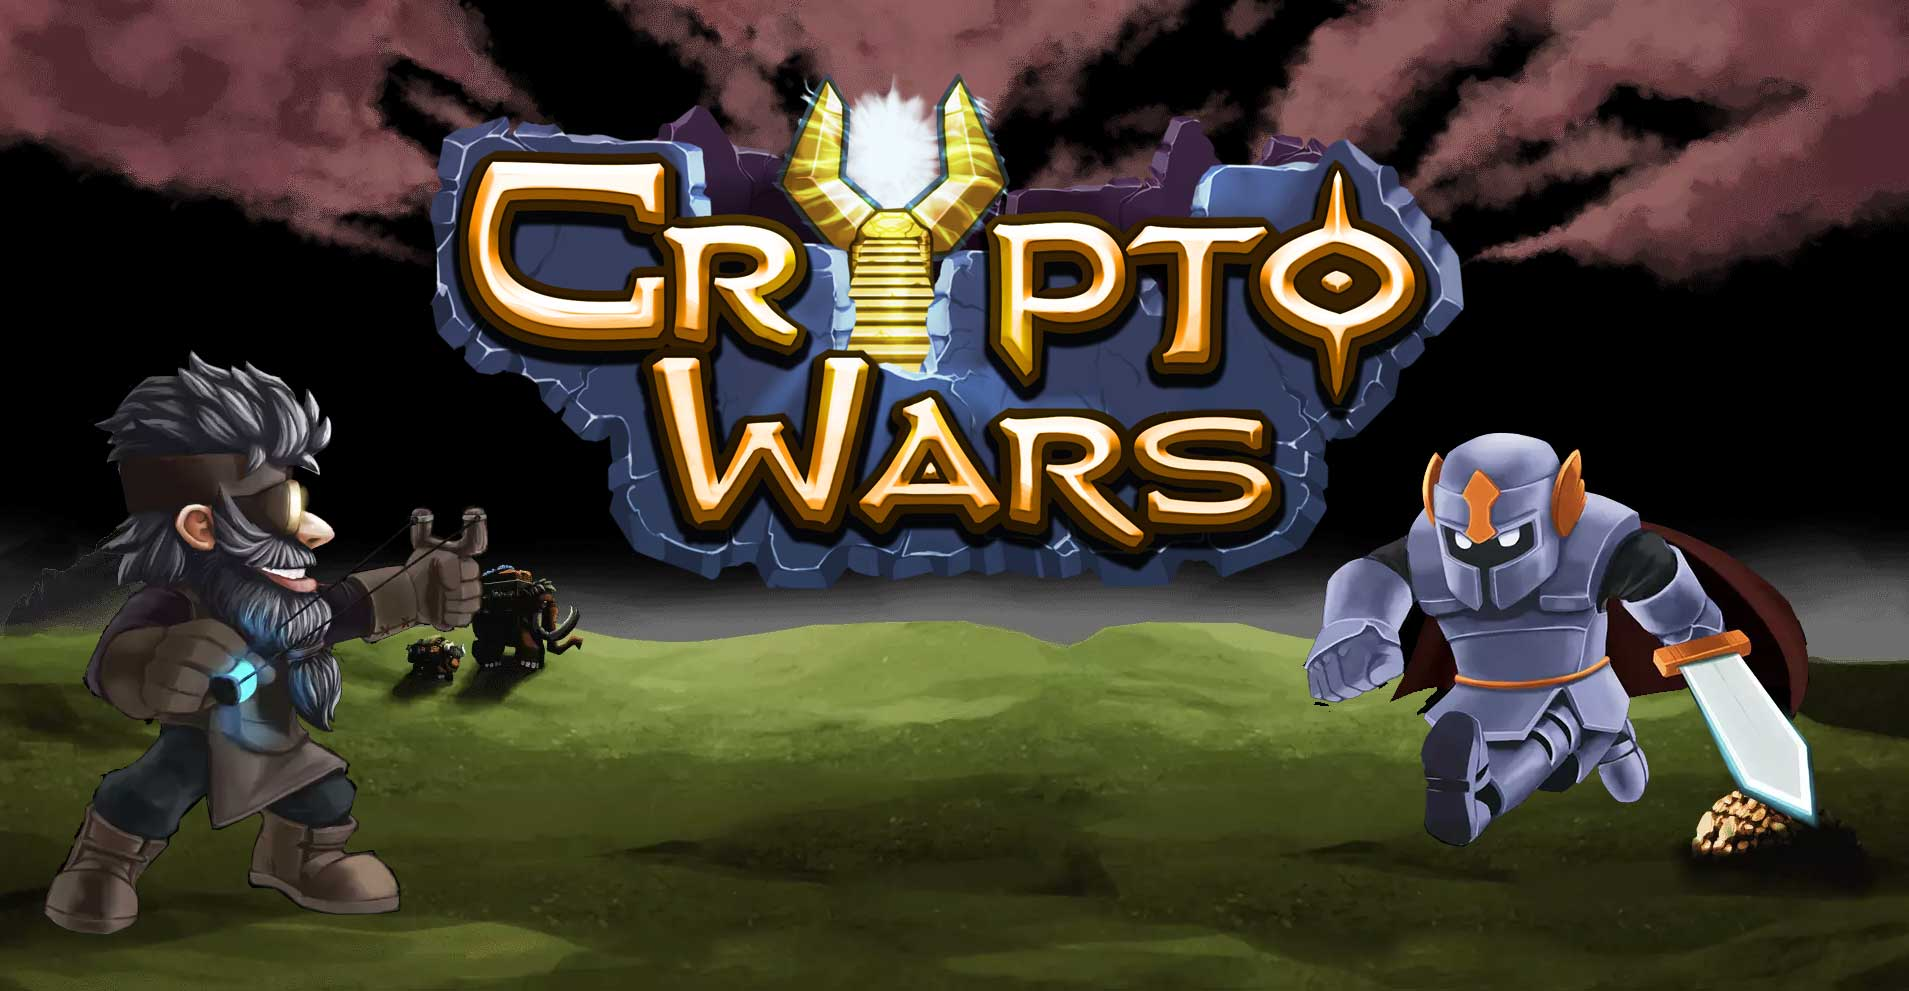 CryptoWars explores 'play-to-earn' model: An interview with Matias Nisenson